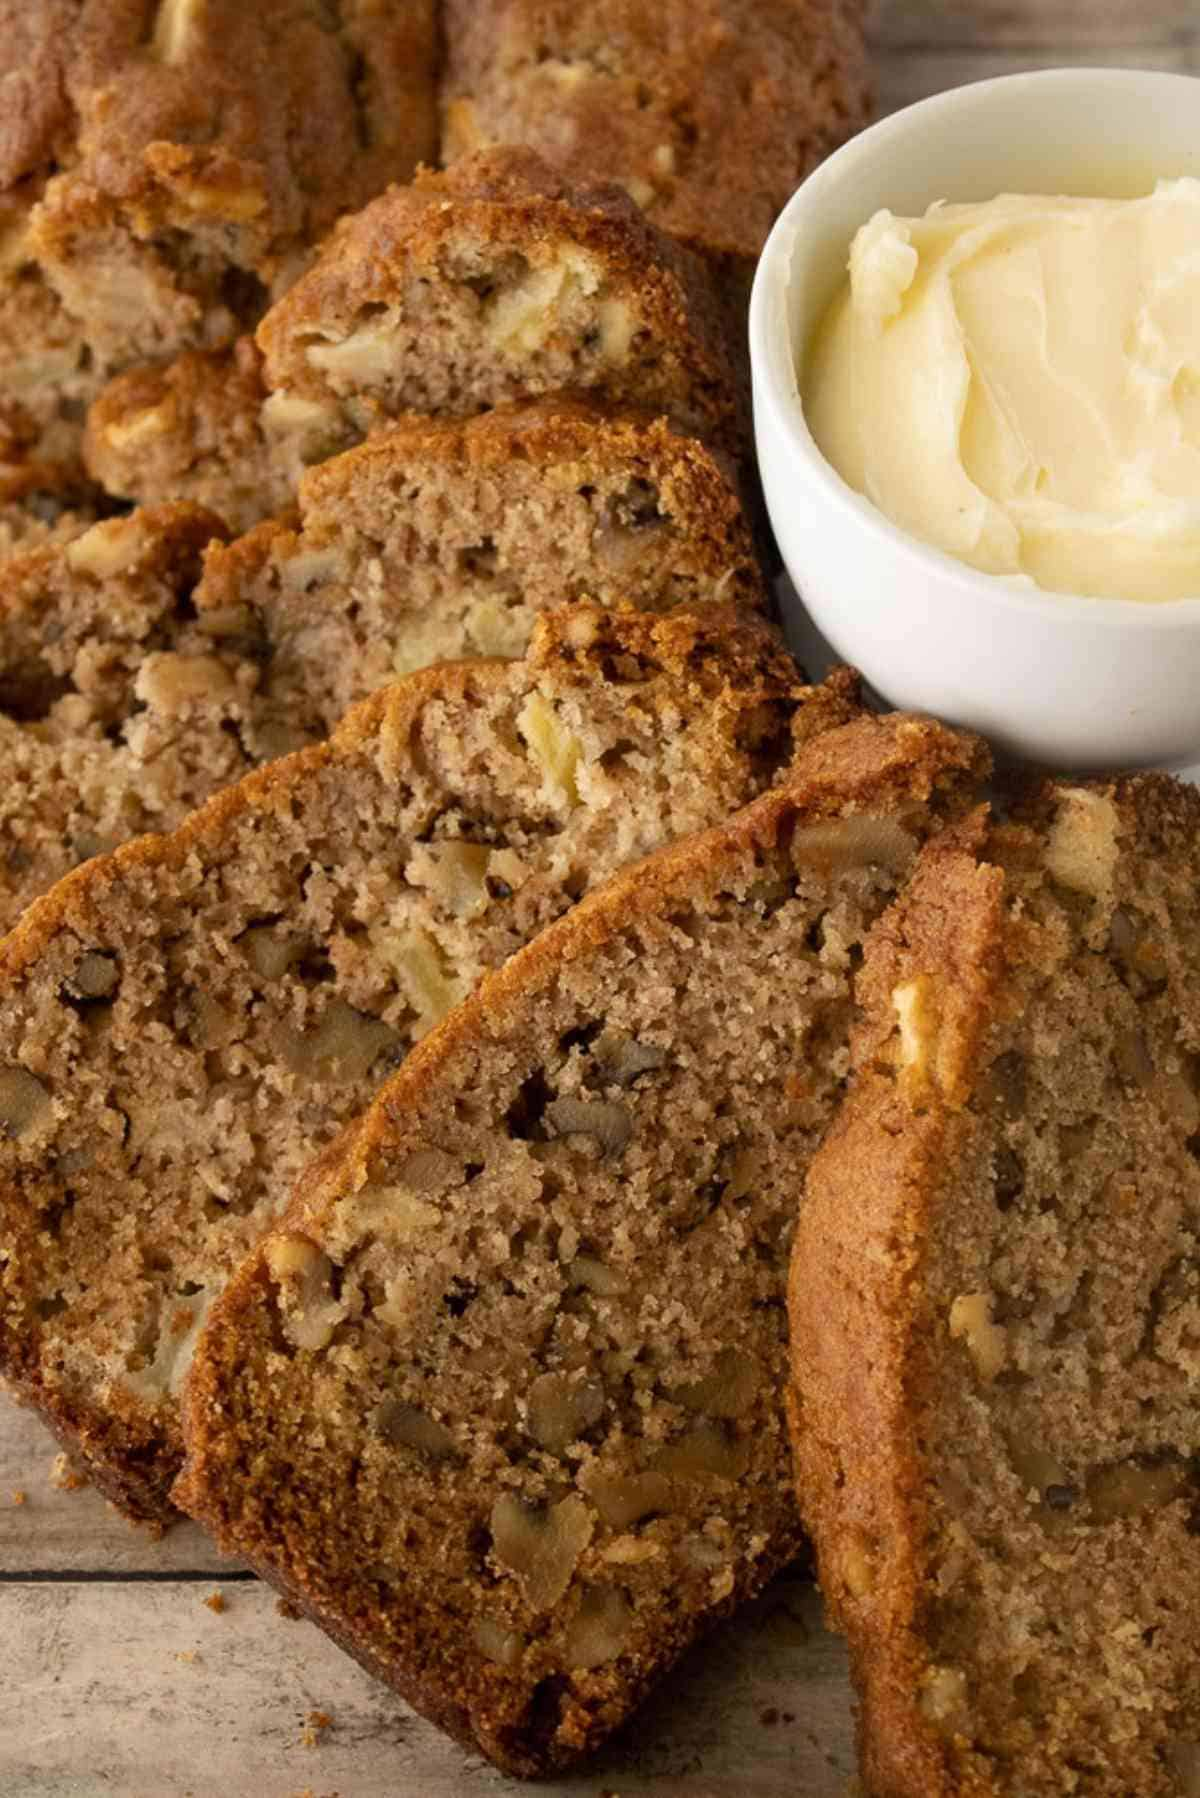 Slices of walnut apple bread arranged around a butter dish.